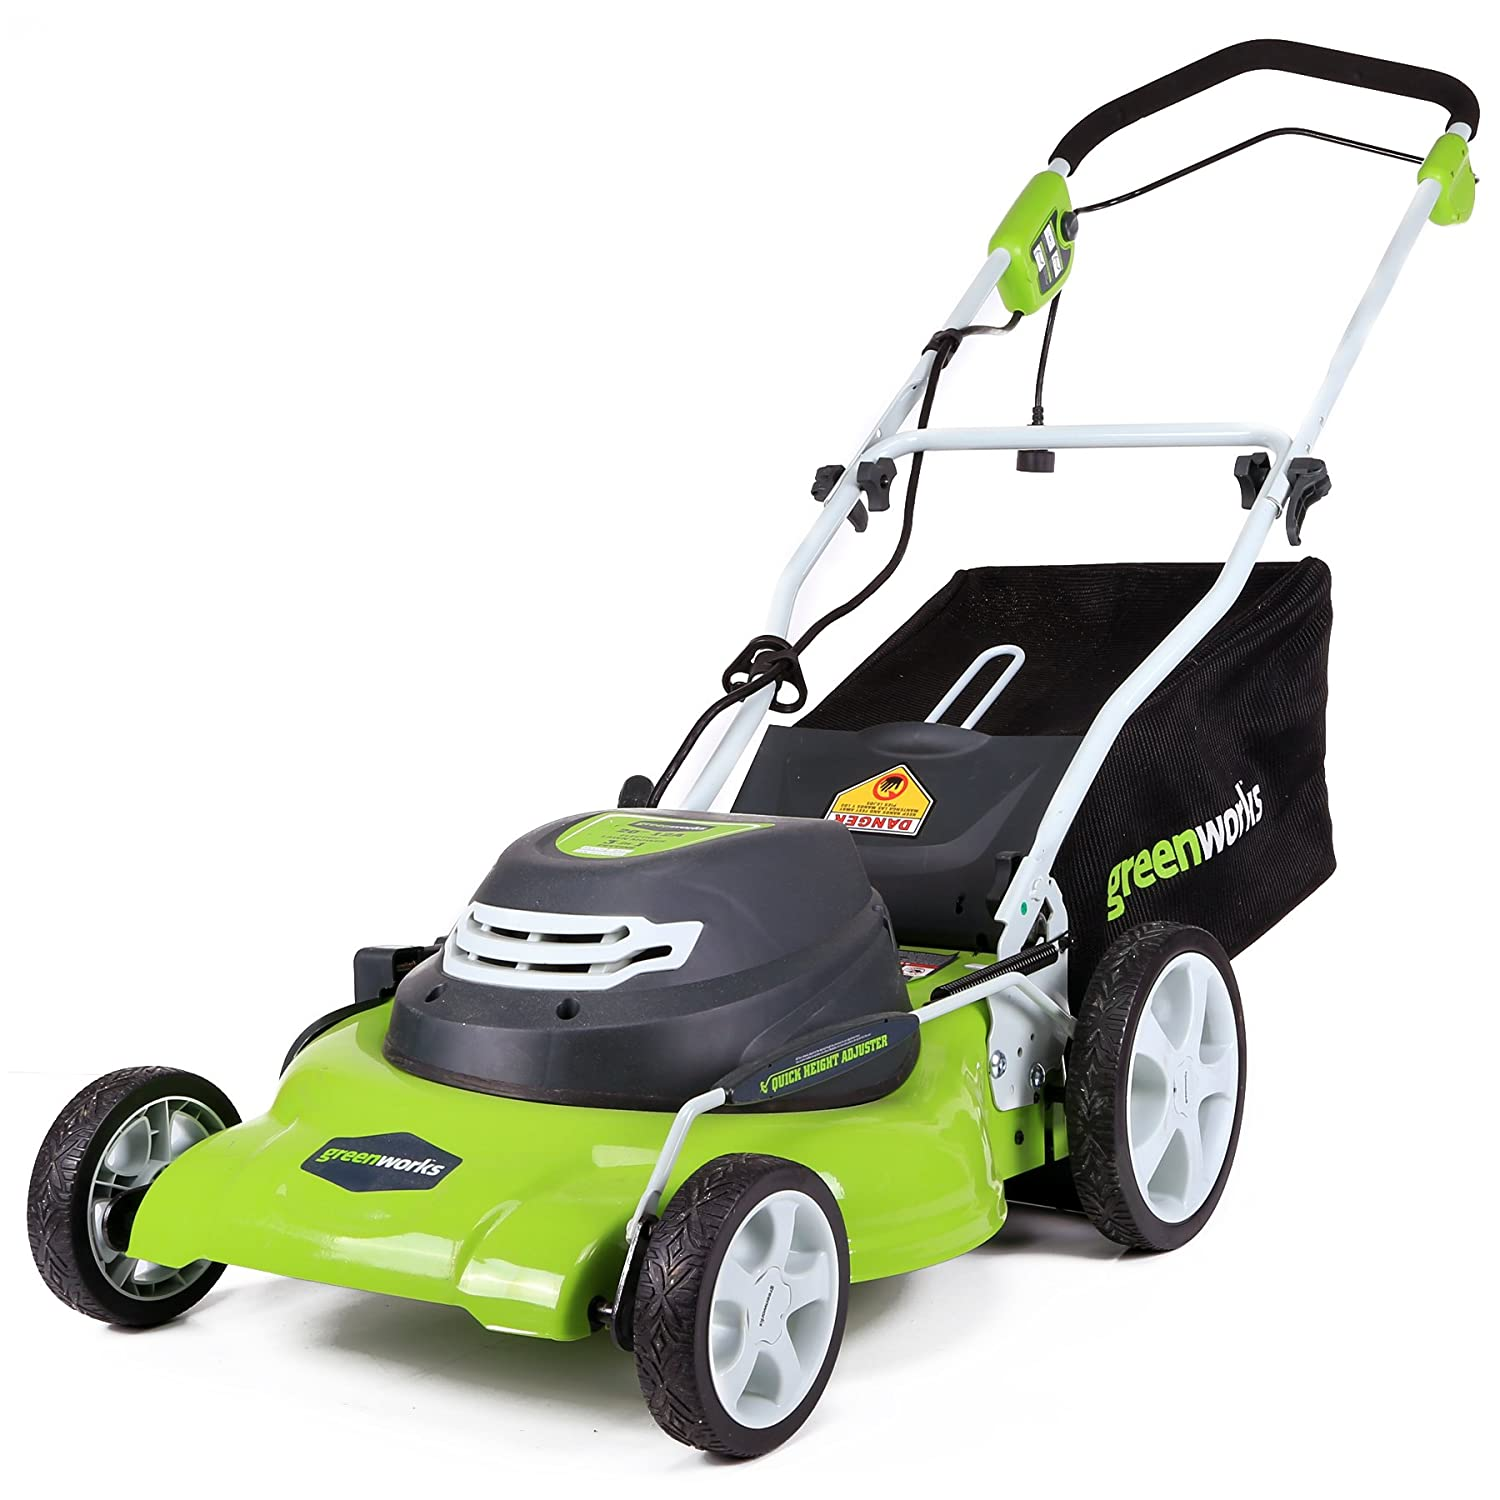 Best lawn mower - Greenworks 20-Inch 12 Amp Corded Lawn Mower